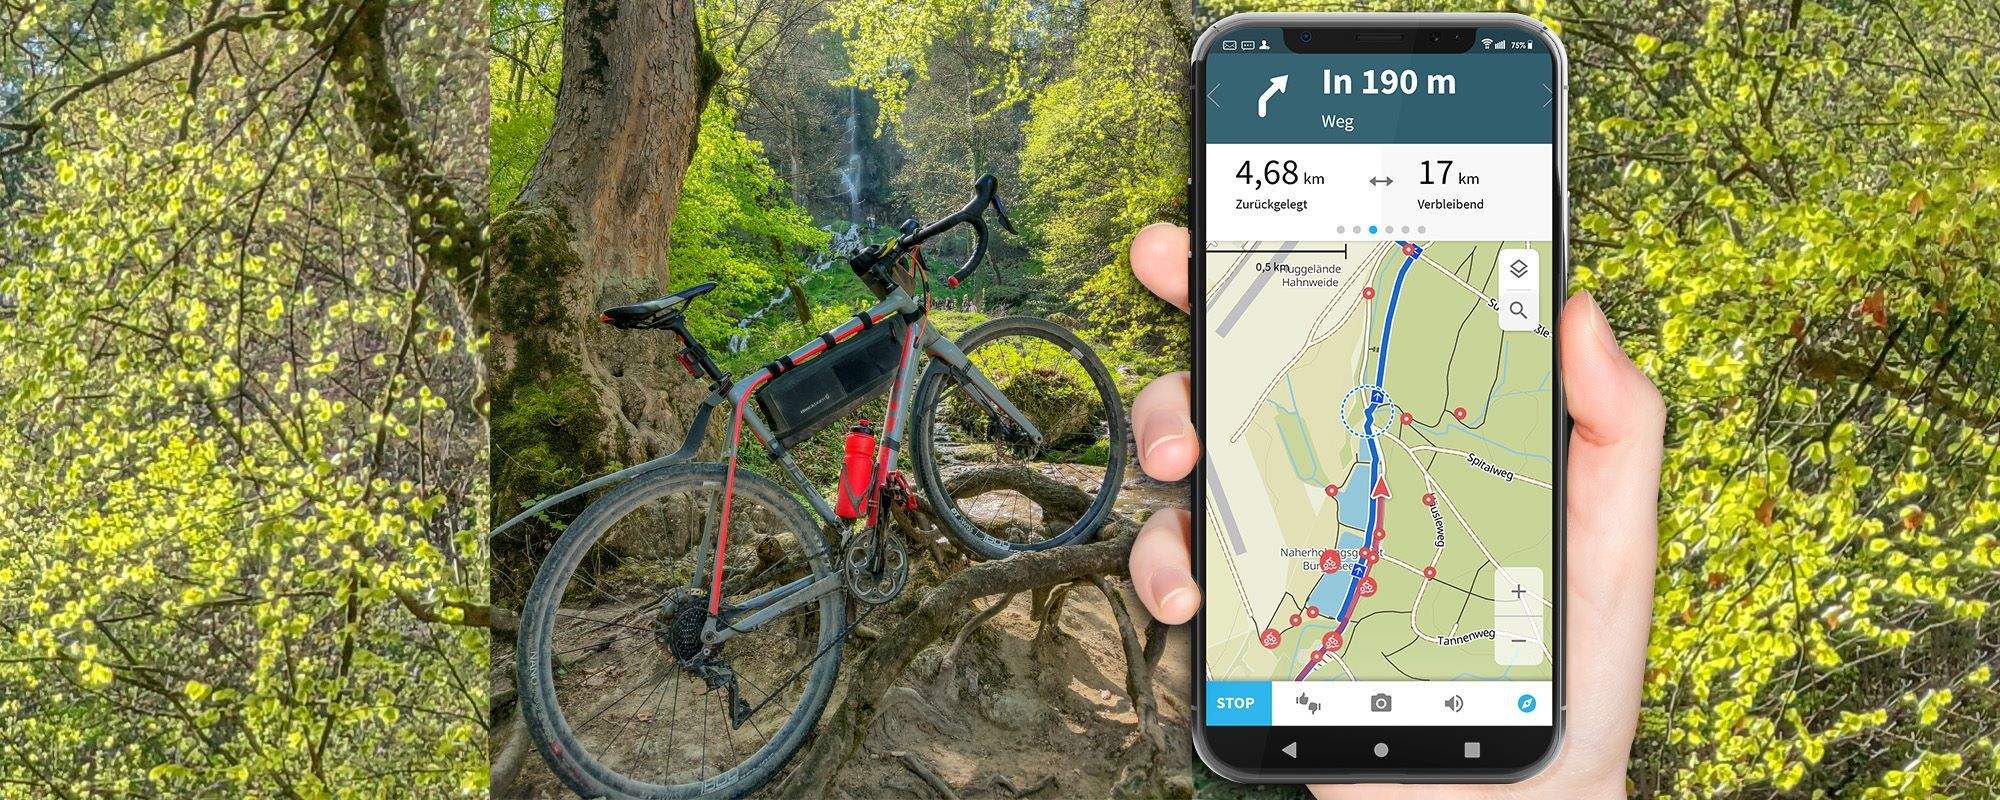 komoot Test - Navi App and Route Planner in a detailed practical test (Complete Guide)